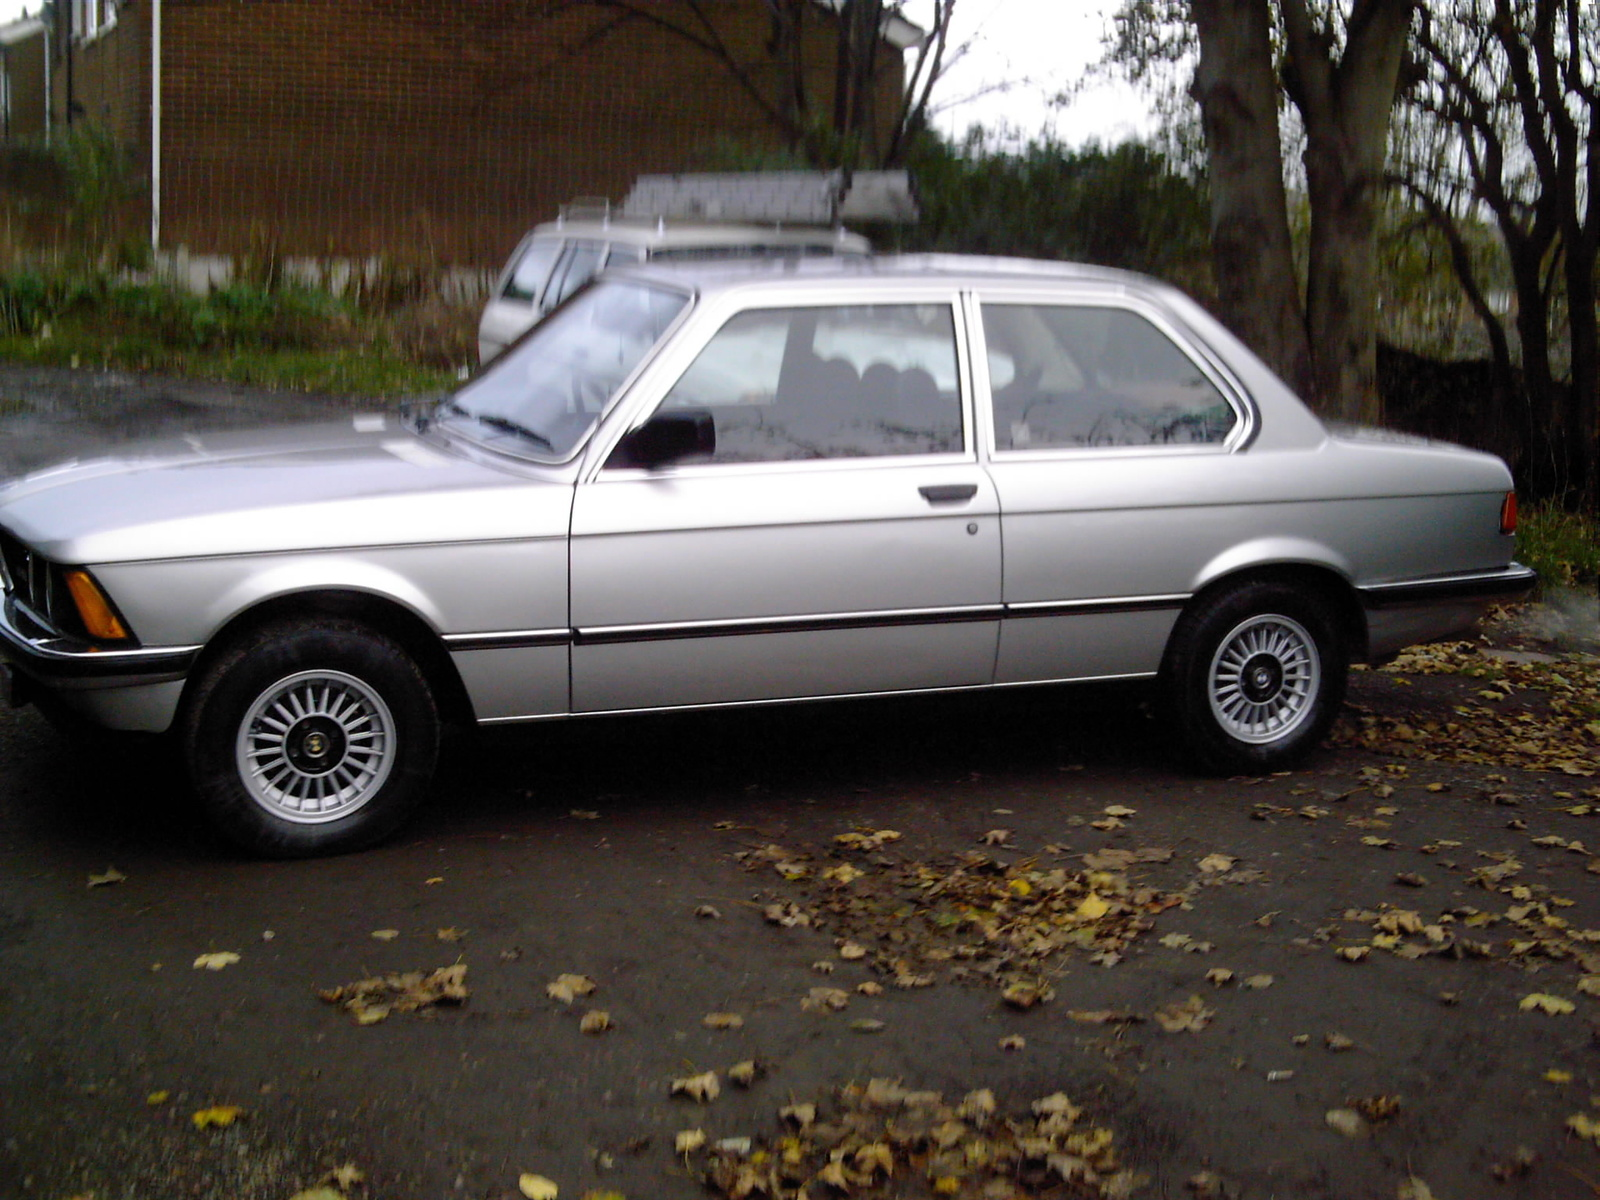 Bmw 320i 1990 Review Amazing Pictures And Images Look At The Car E24 Wiring Diagrams Photo Video